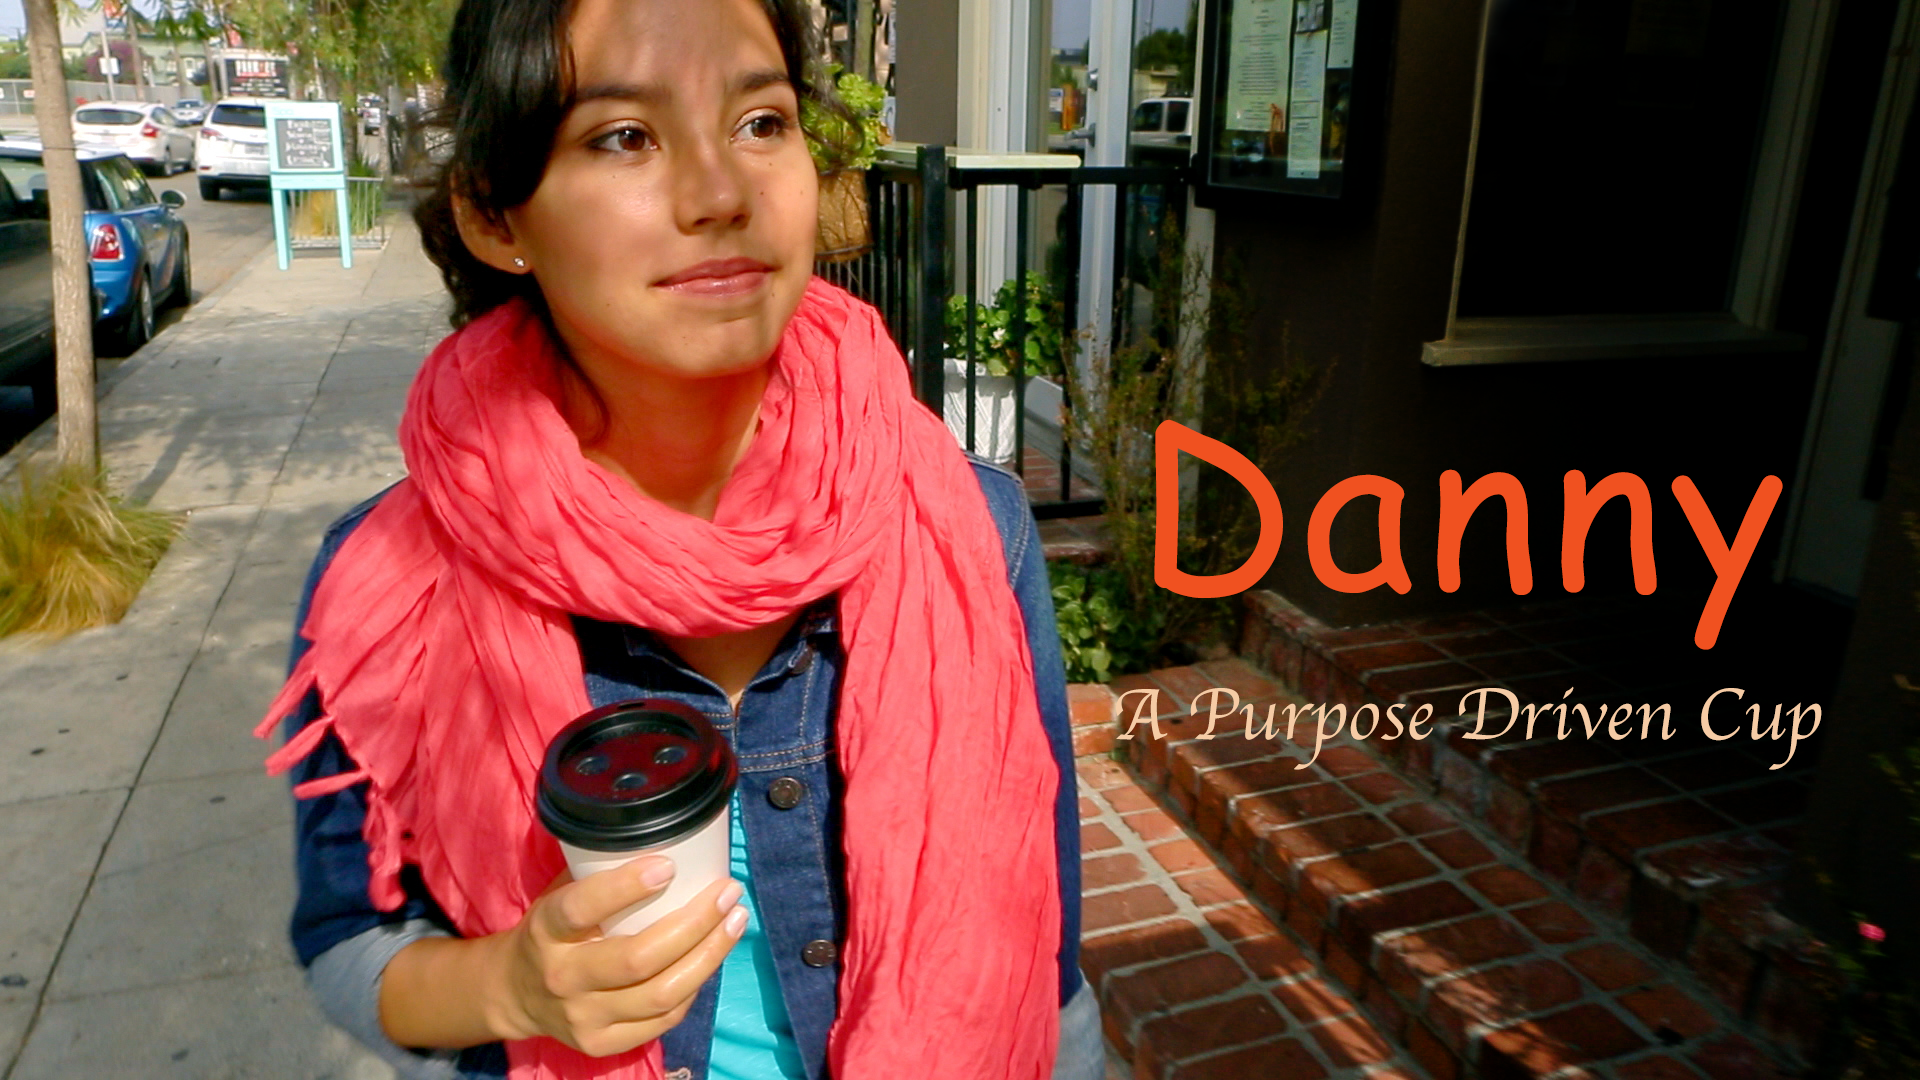 Danny: A Purpose Driven Cup